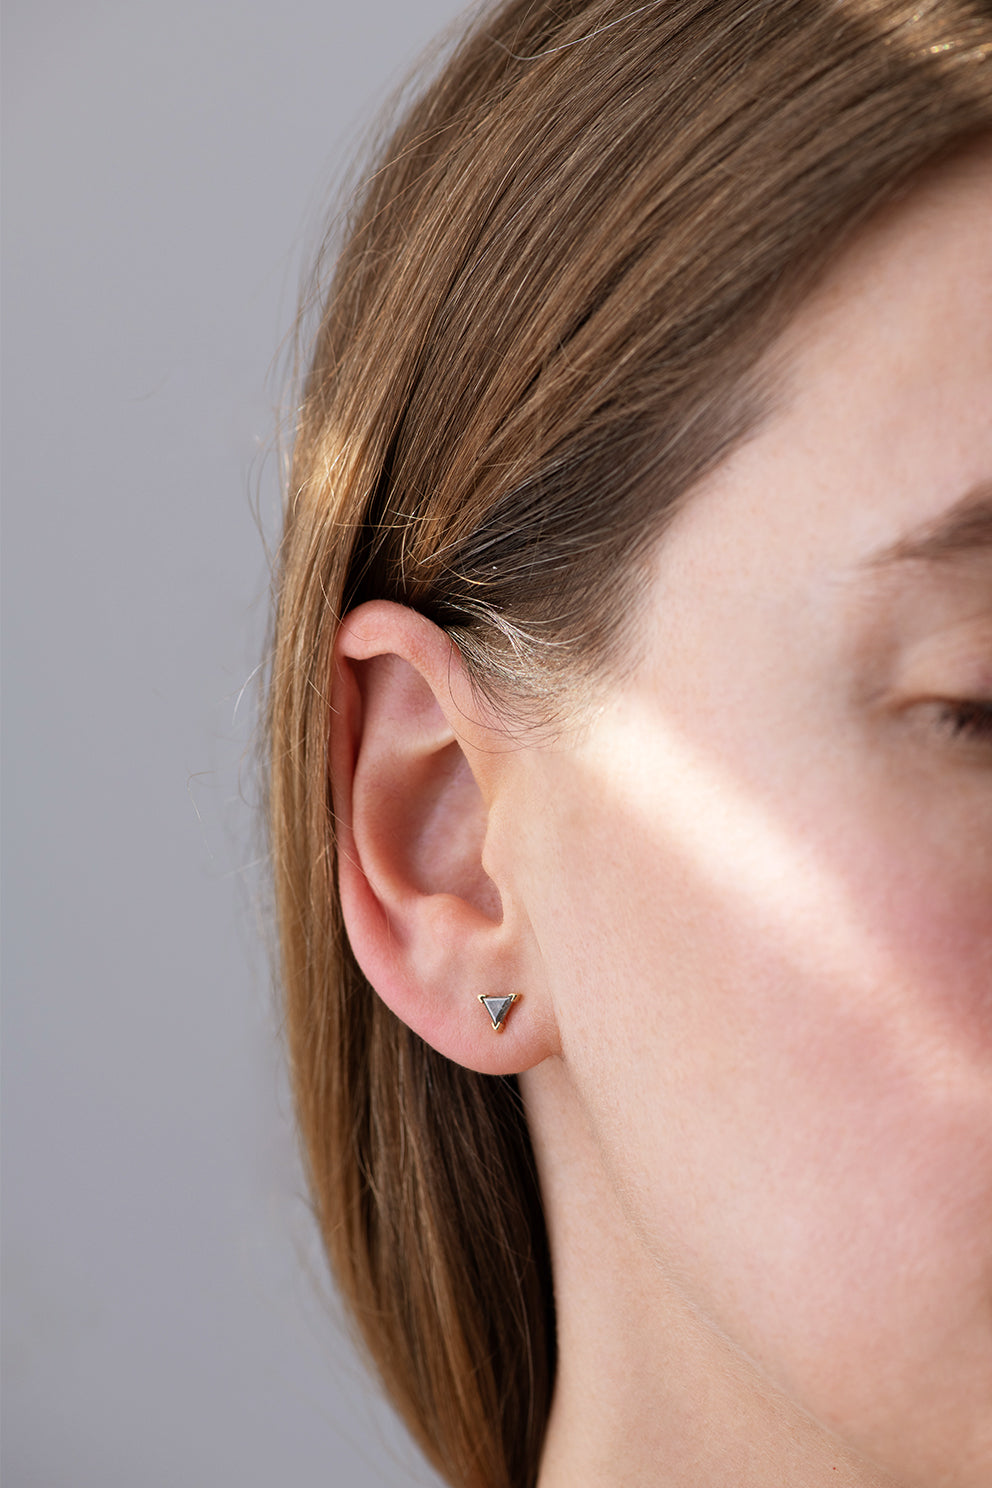 Grey Triangle Diamond Stud Earrings on Ear Side View